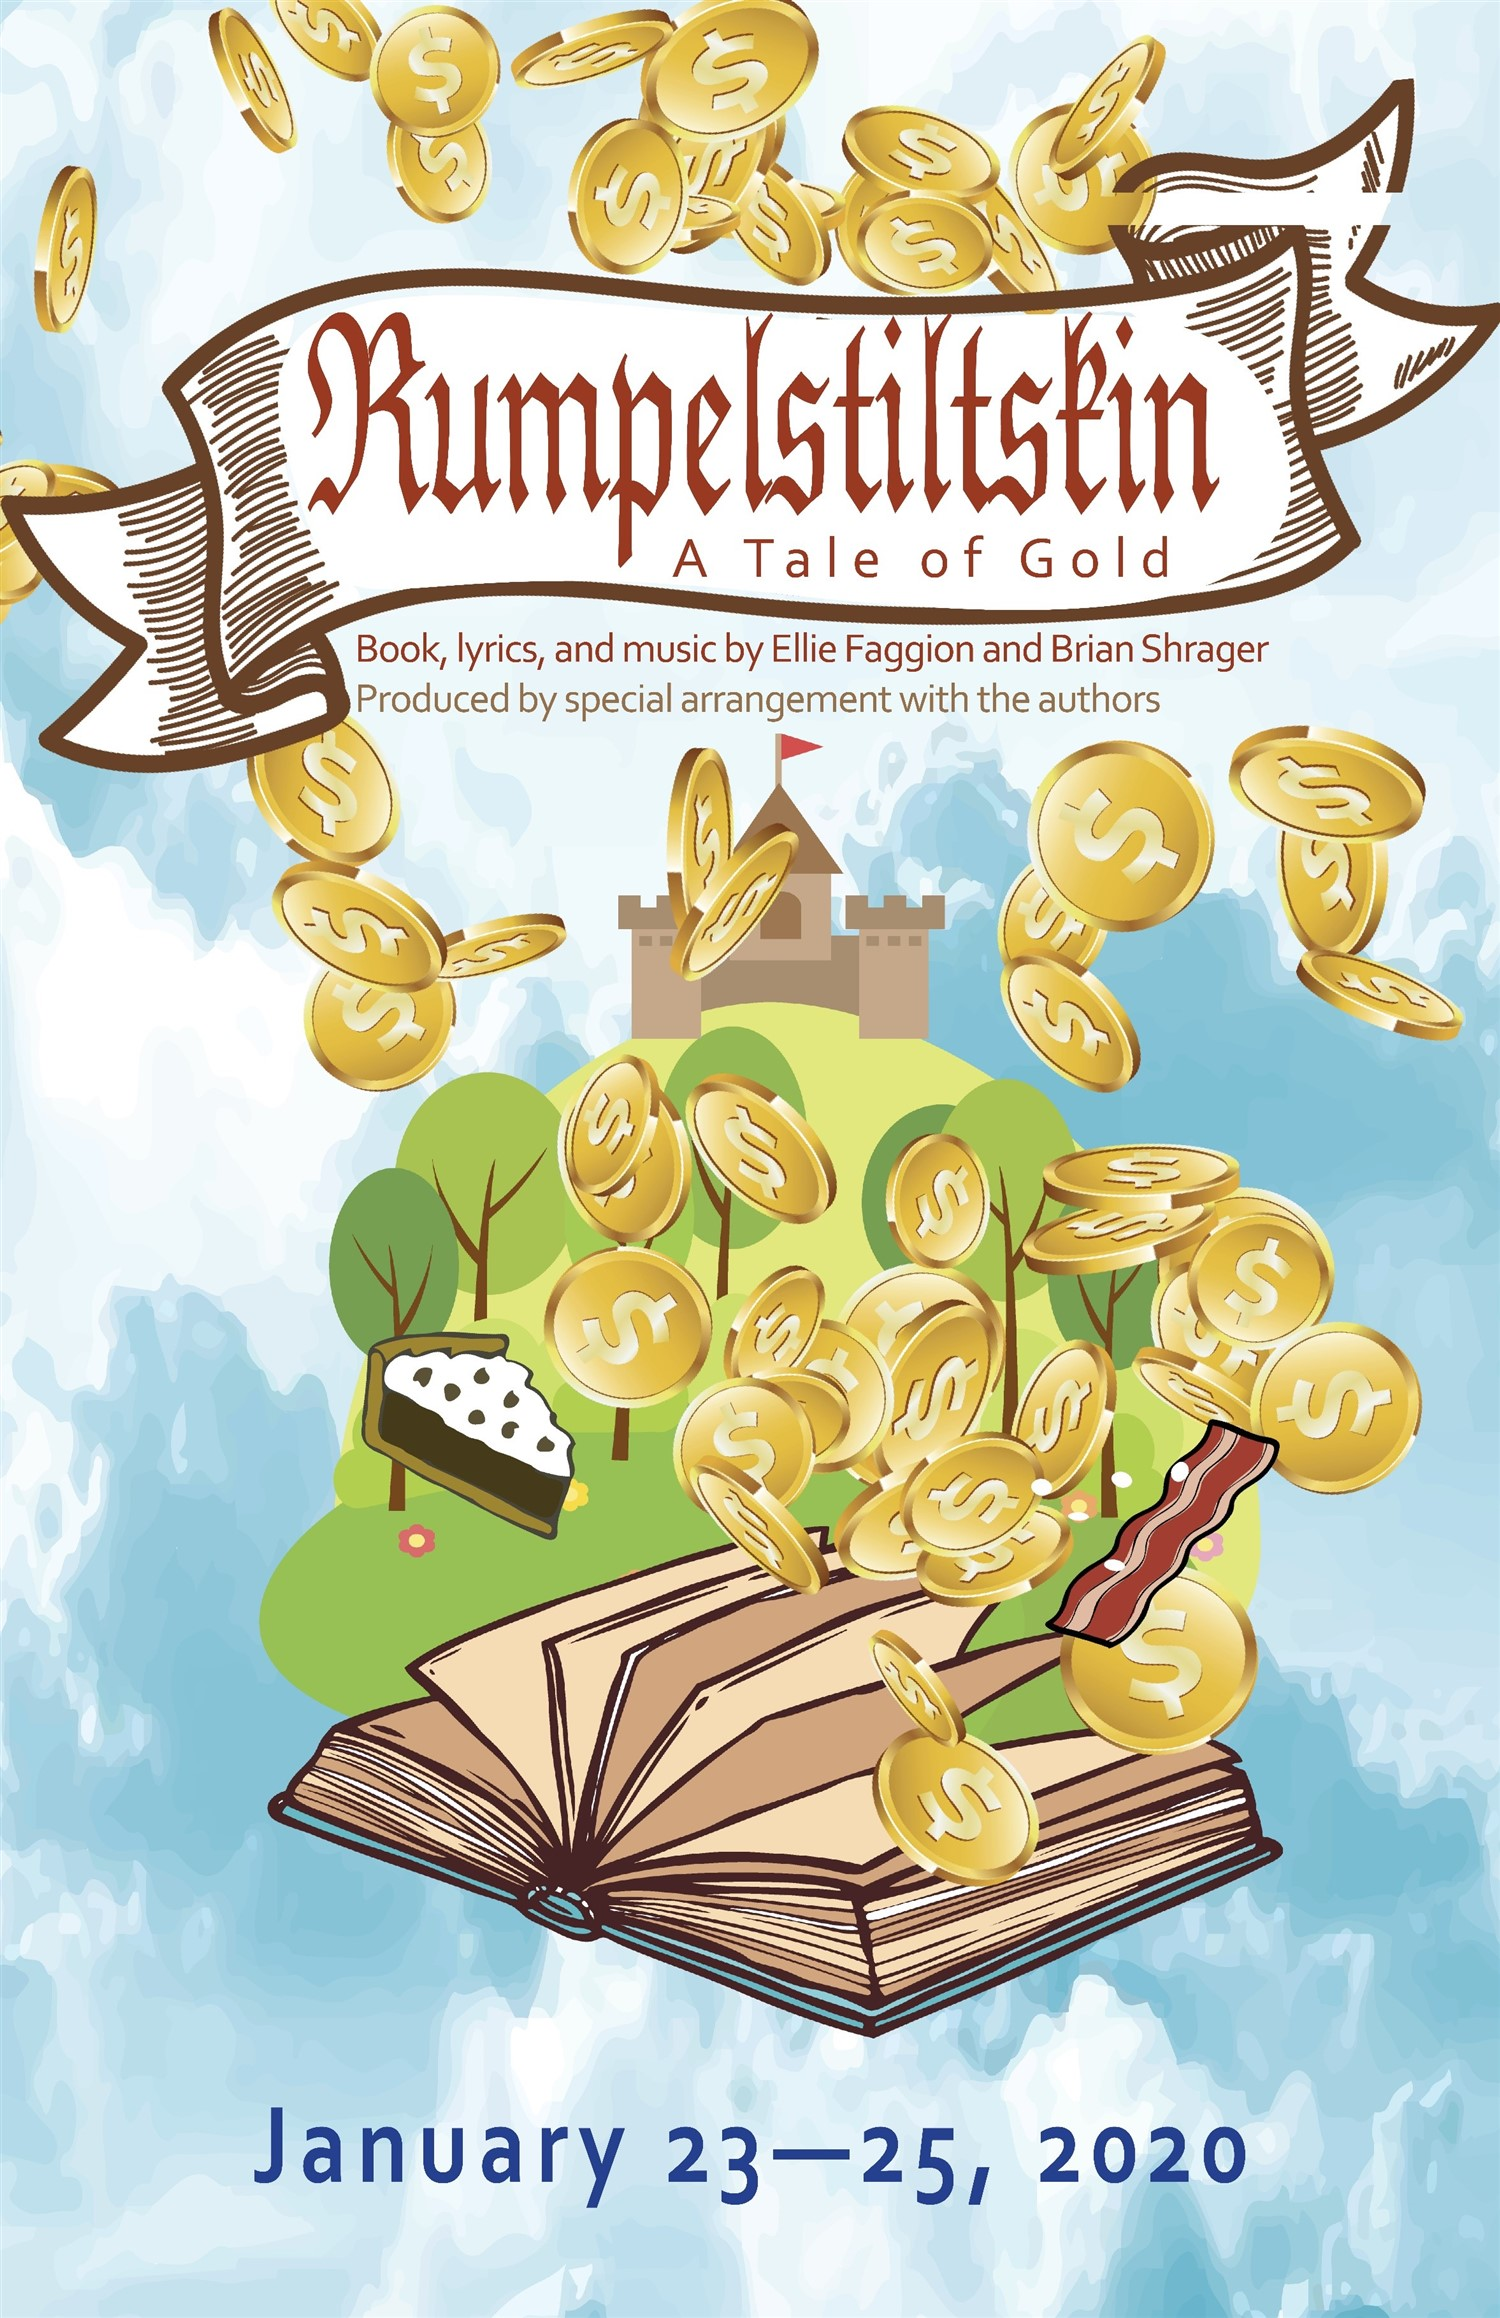 Rumpelstiltskin-A Tale of Gold Thursday, January 23, 2020 @ 7:30 pm on Jan 23, 19:30@Spiritual Twist Productions - Pick a seat, Buy tickets and Get information on Spiritual Twist Productions tickets.spiritualtwist.com